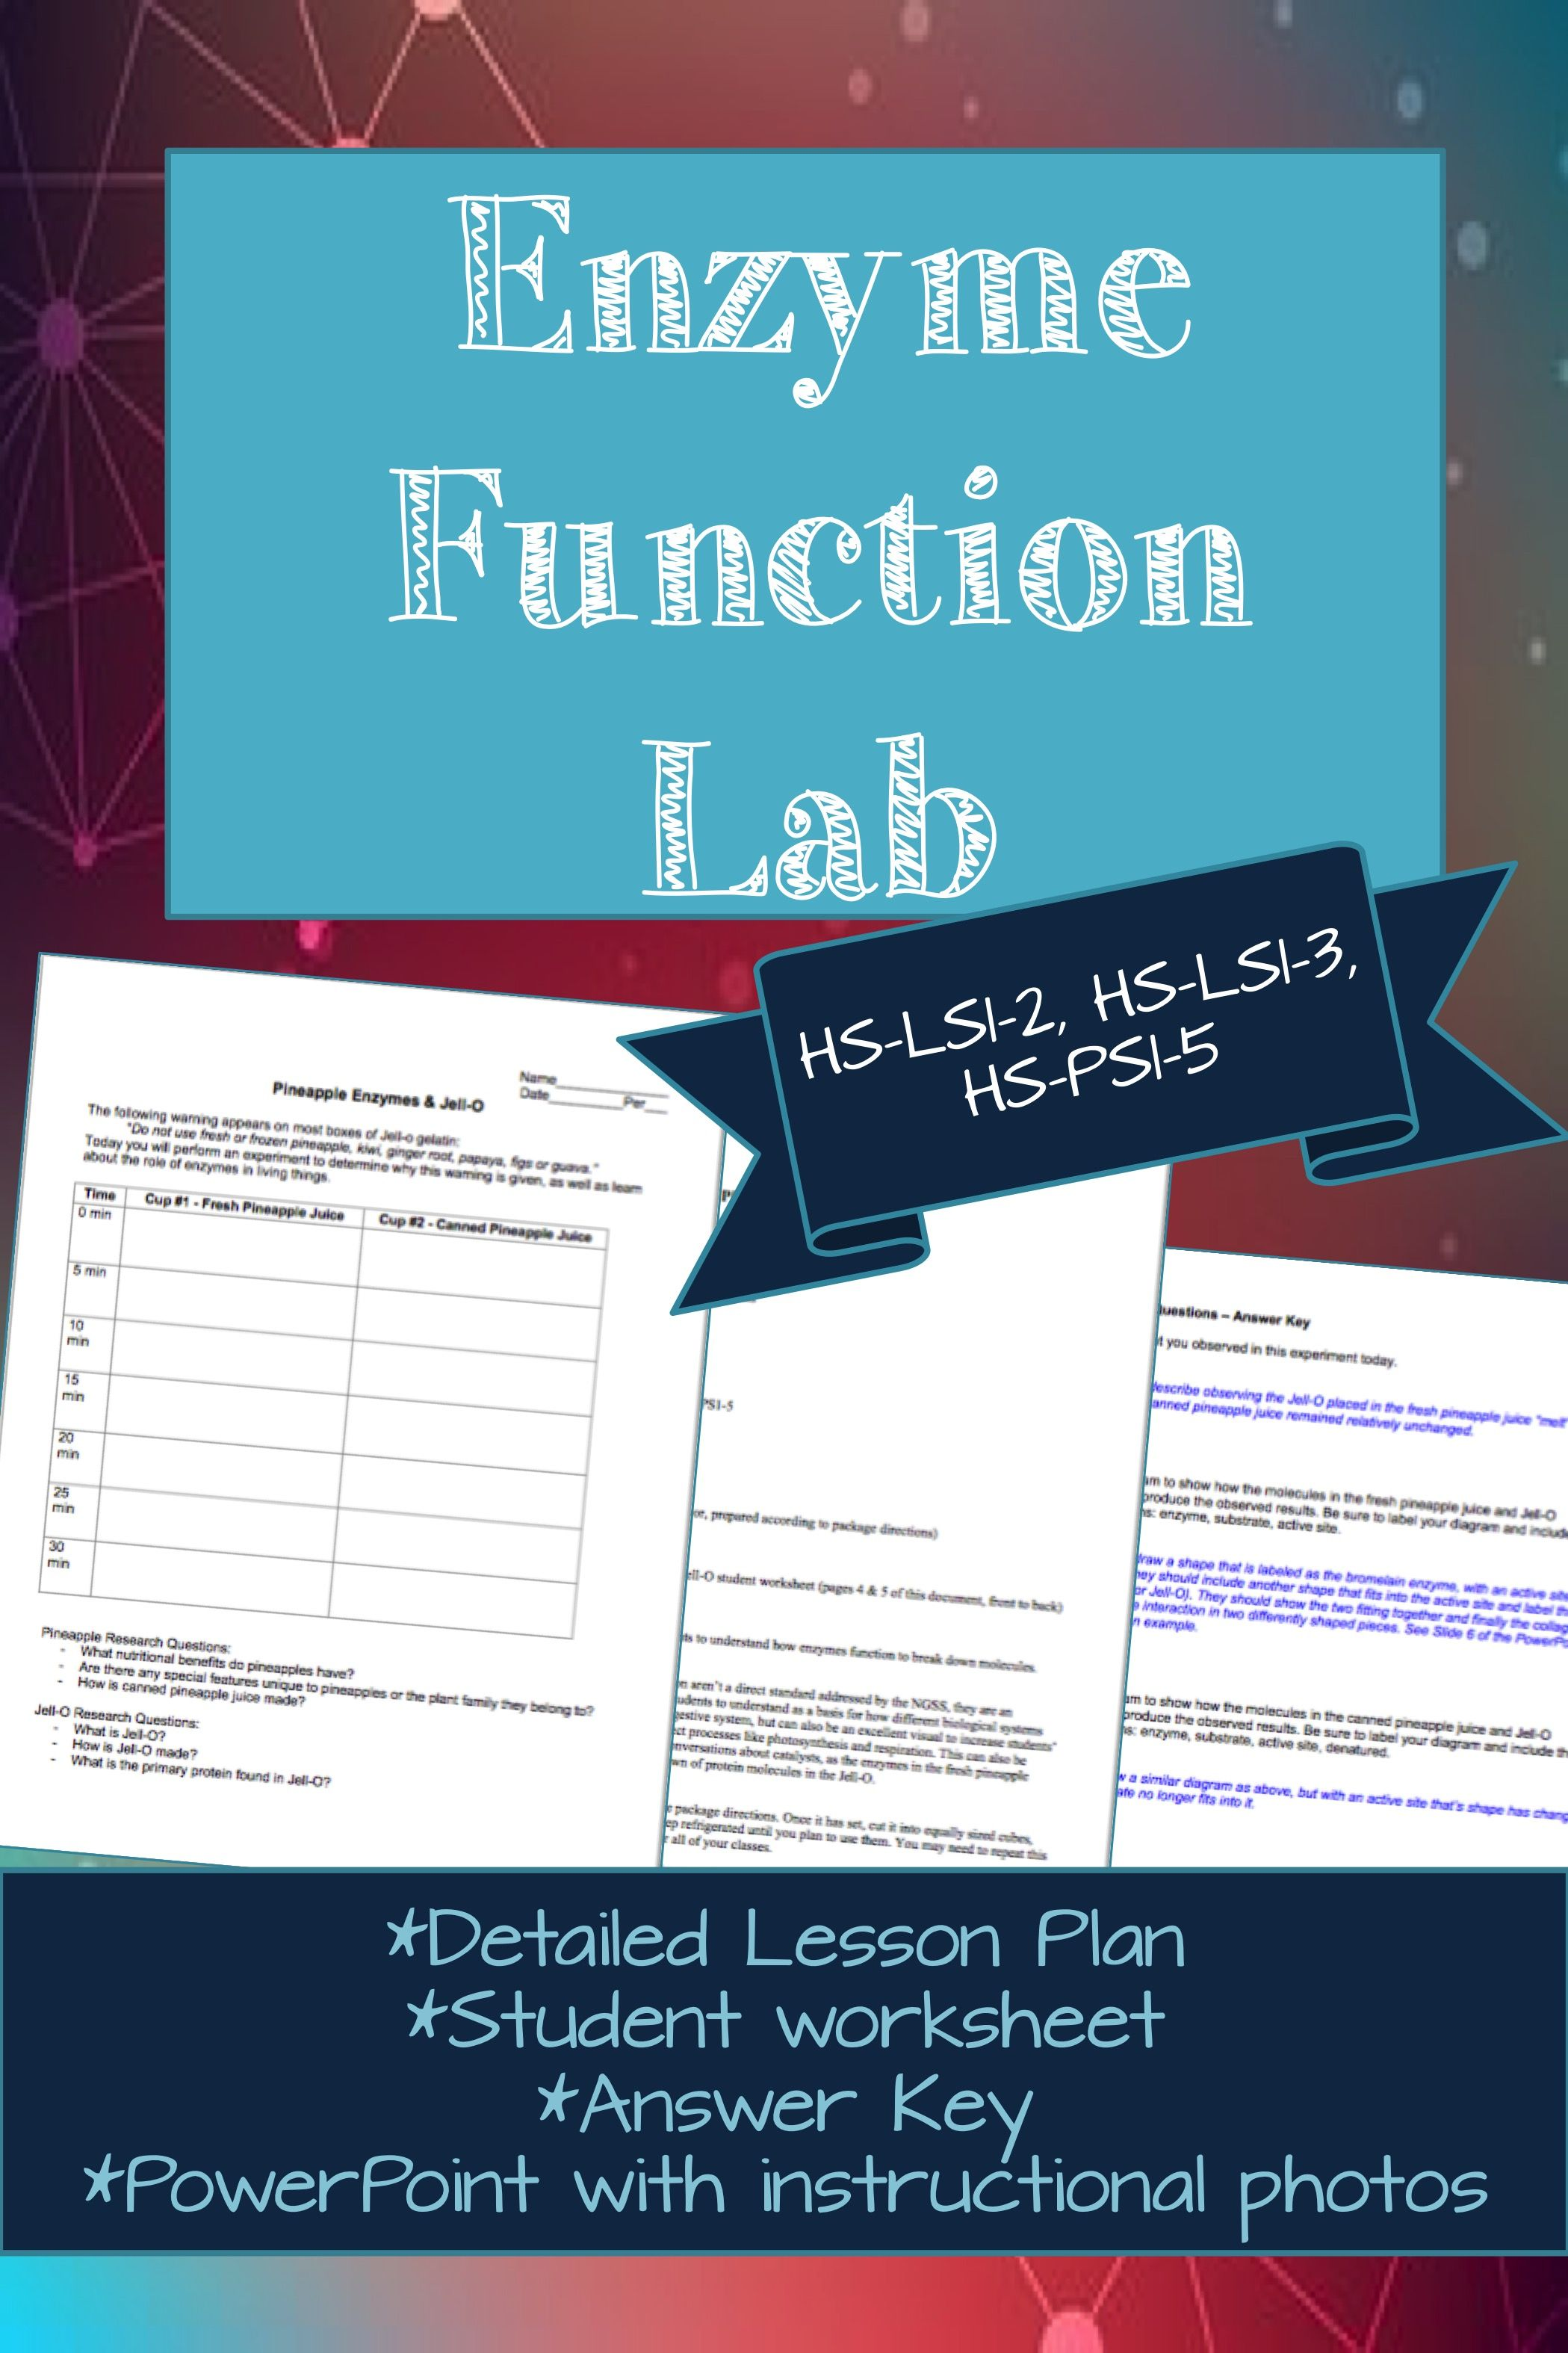 Enzyme Function Lab Ngss Hs Ls1 2 Hs Ls1 3 Hs Ps1 5 Lab Activities Biology Labs Enzymes